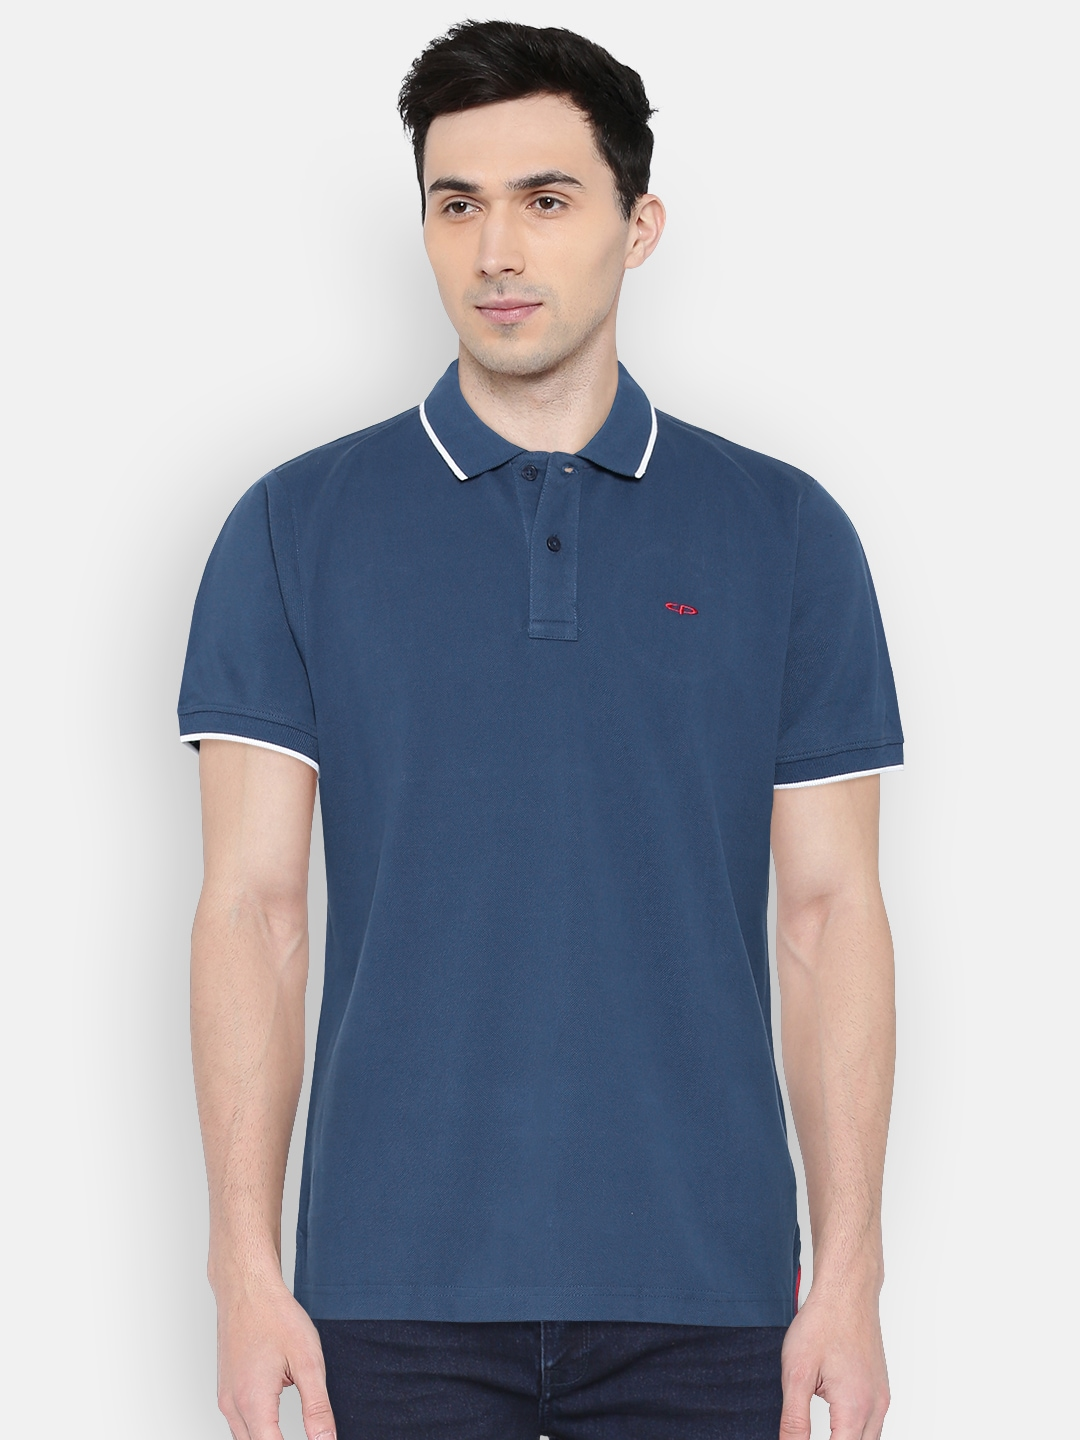 3b30b0f50ee 5610adf4-b039-41d5-aa93-a421b93444811535022775326-ColorPlus-Men-Navy-Solid-Polo-Collar-T-shirt-5951535022775104-1.jpg